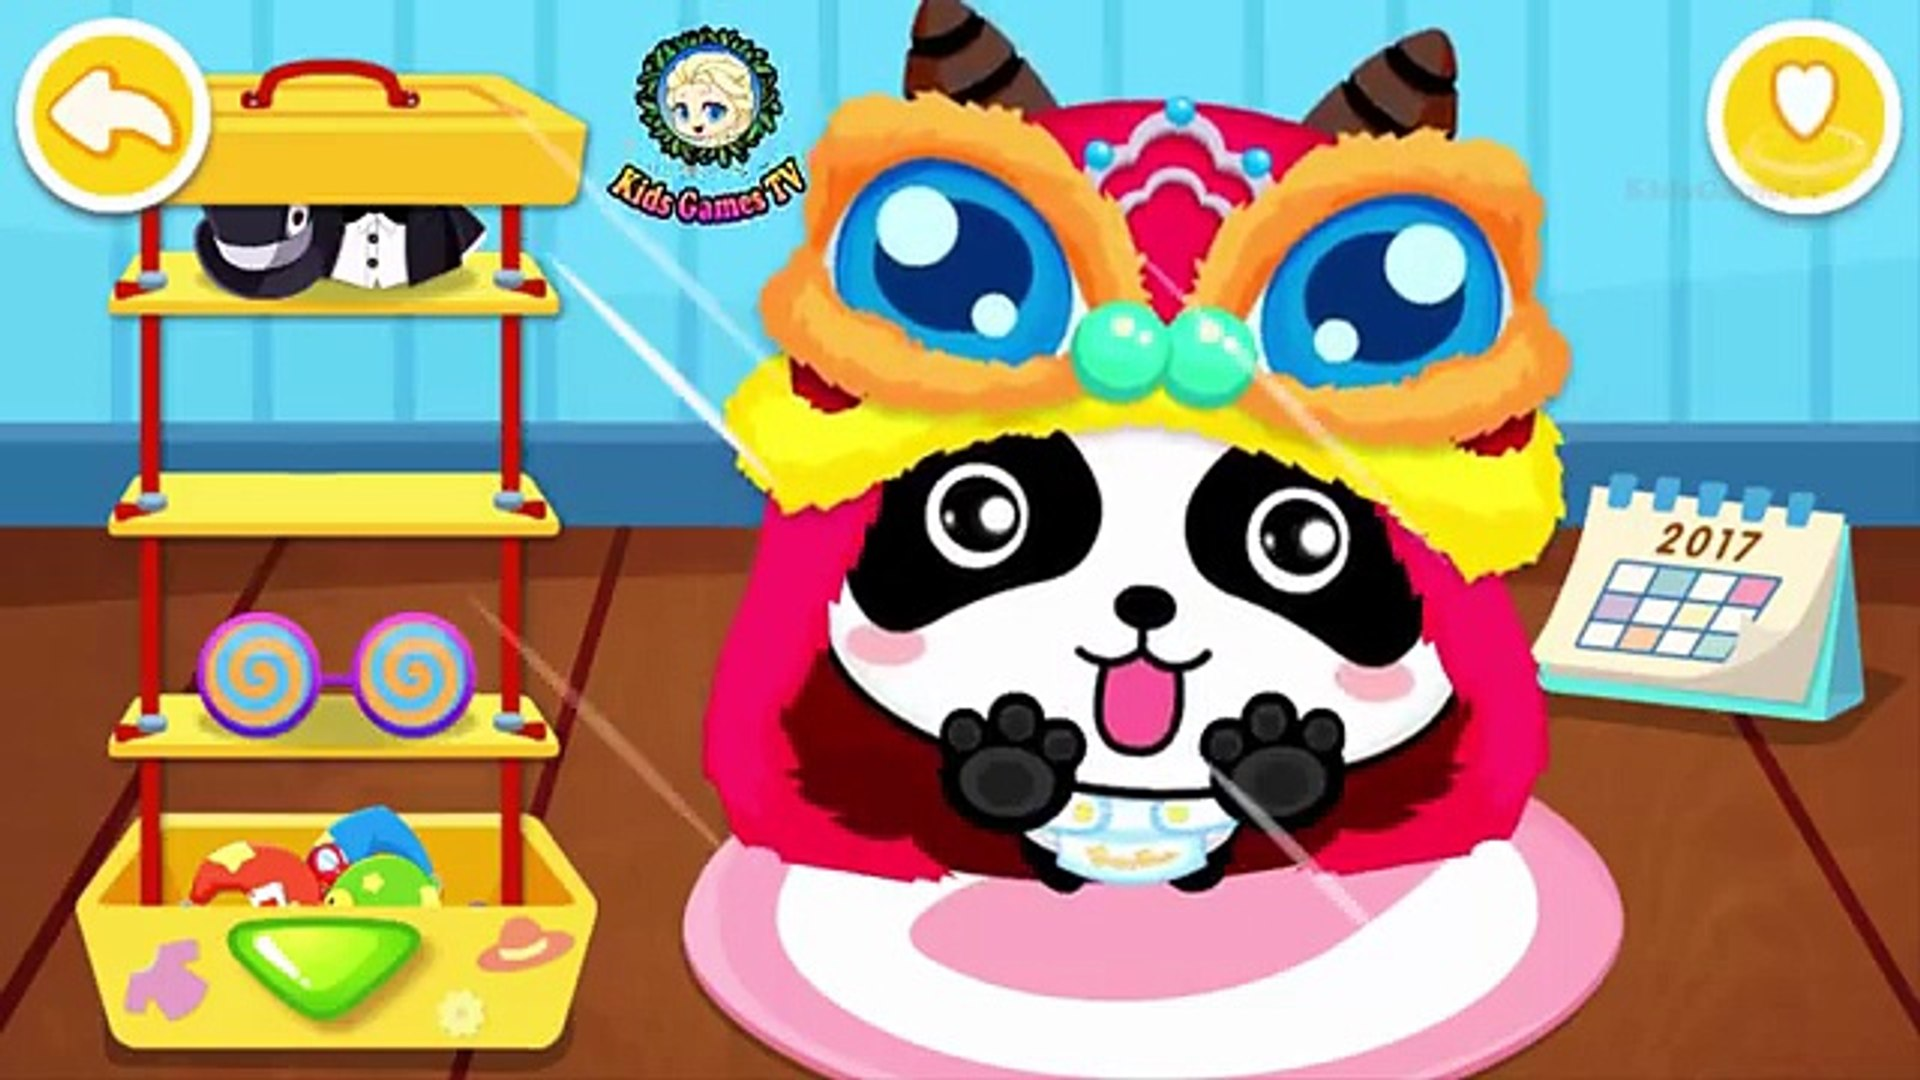 Baby Panda Care - Funny Games for kids _ #Animation Education Cartoons Videos Games For Kids[1]